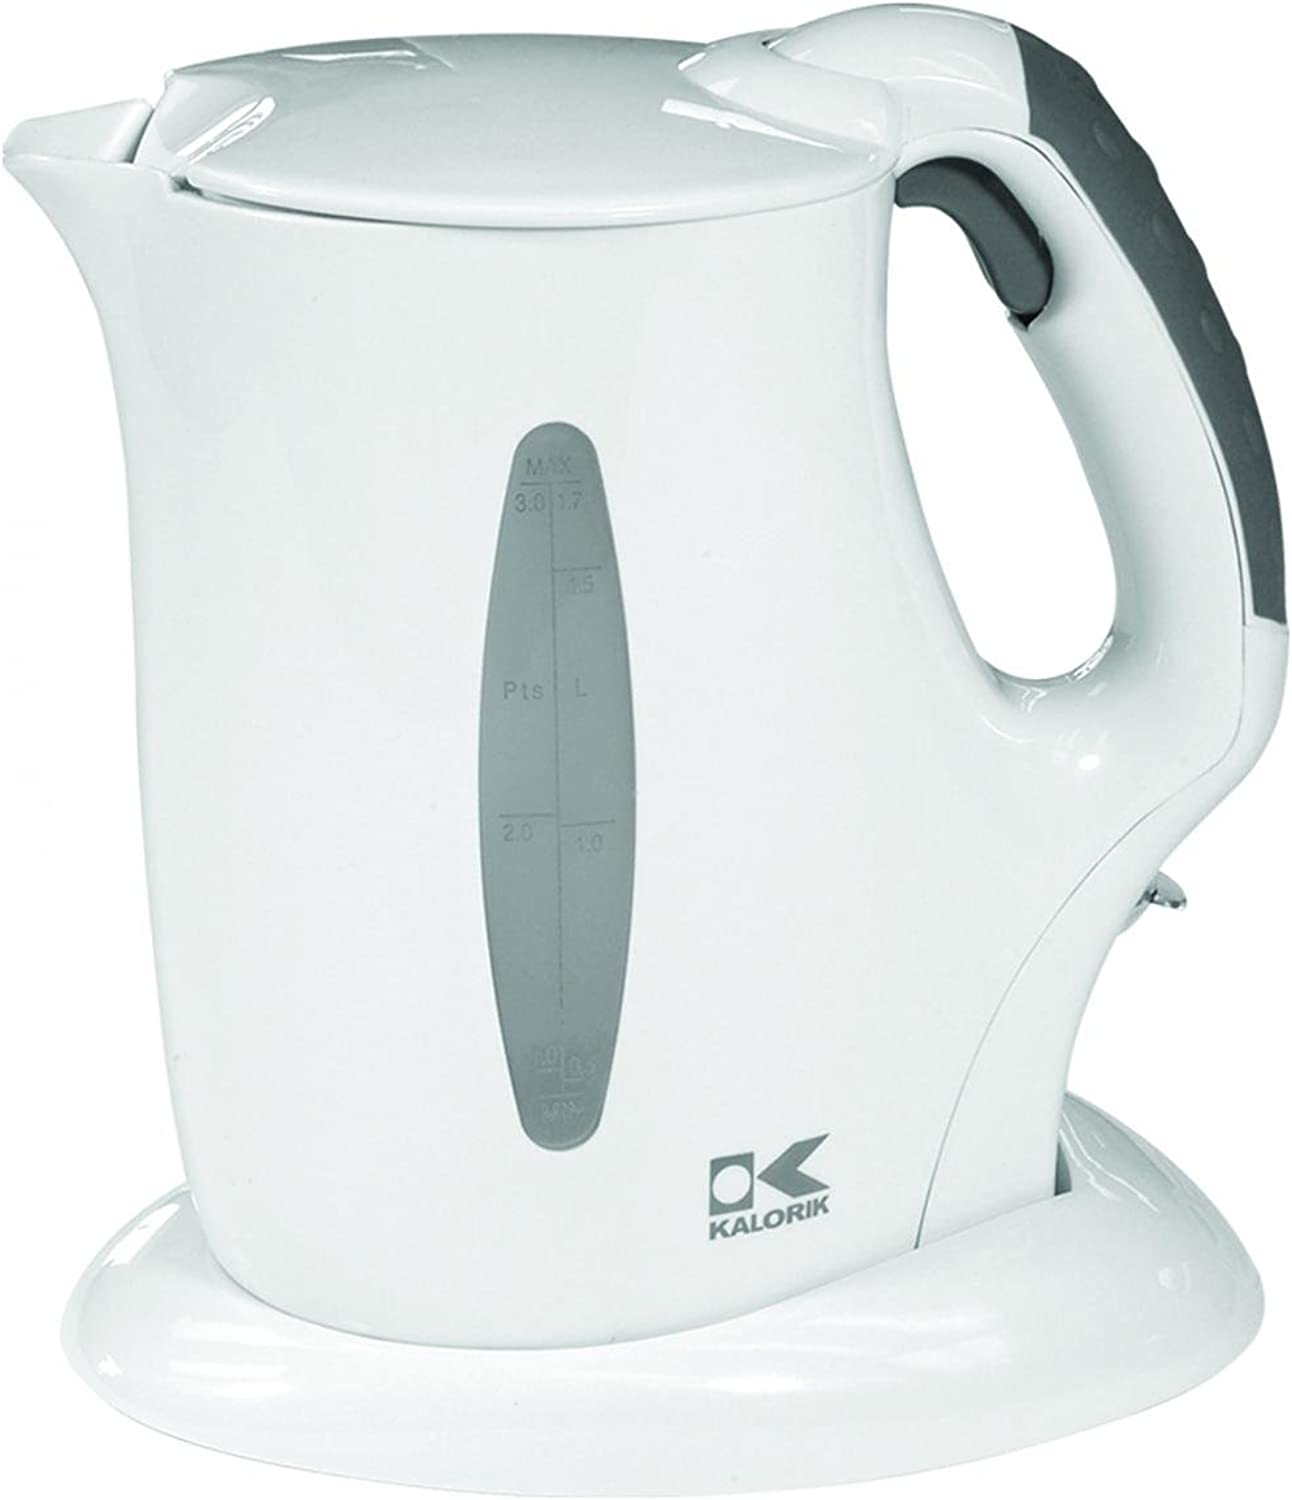 Kalorik Cordless Jug Kettle, White, 57-Oz.